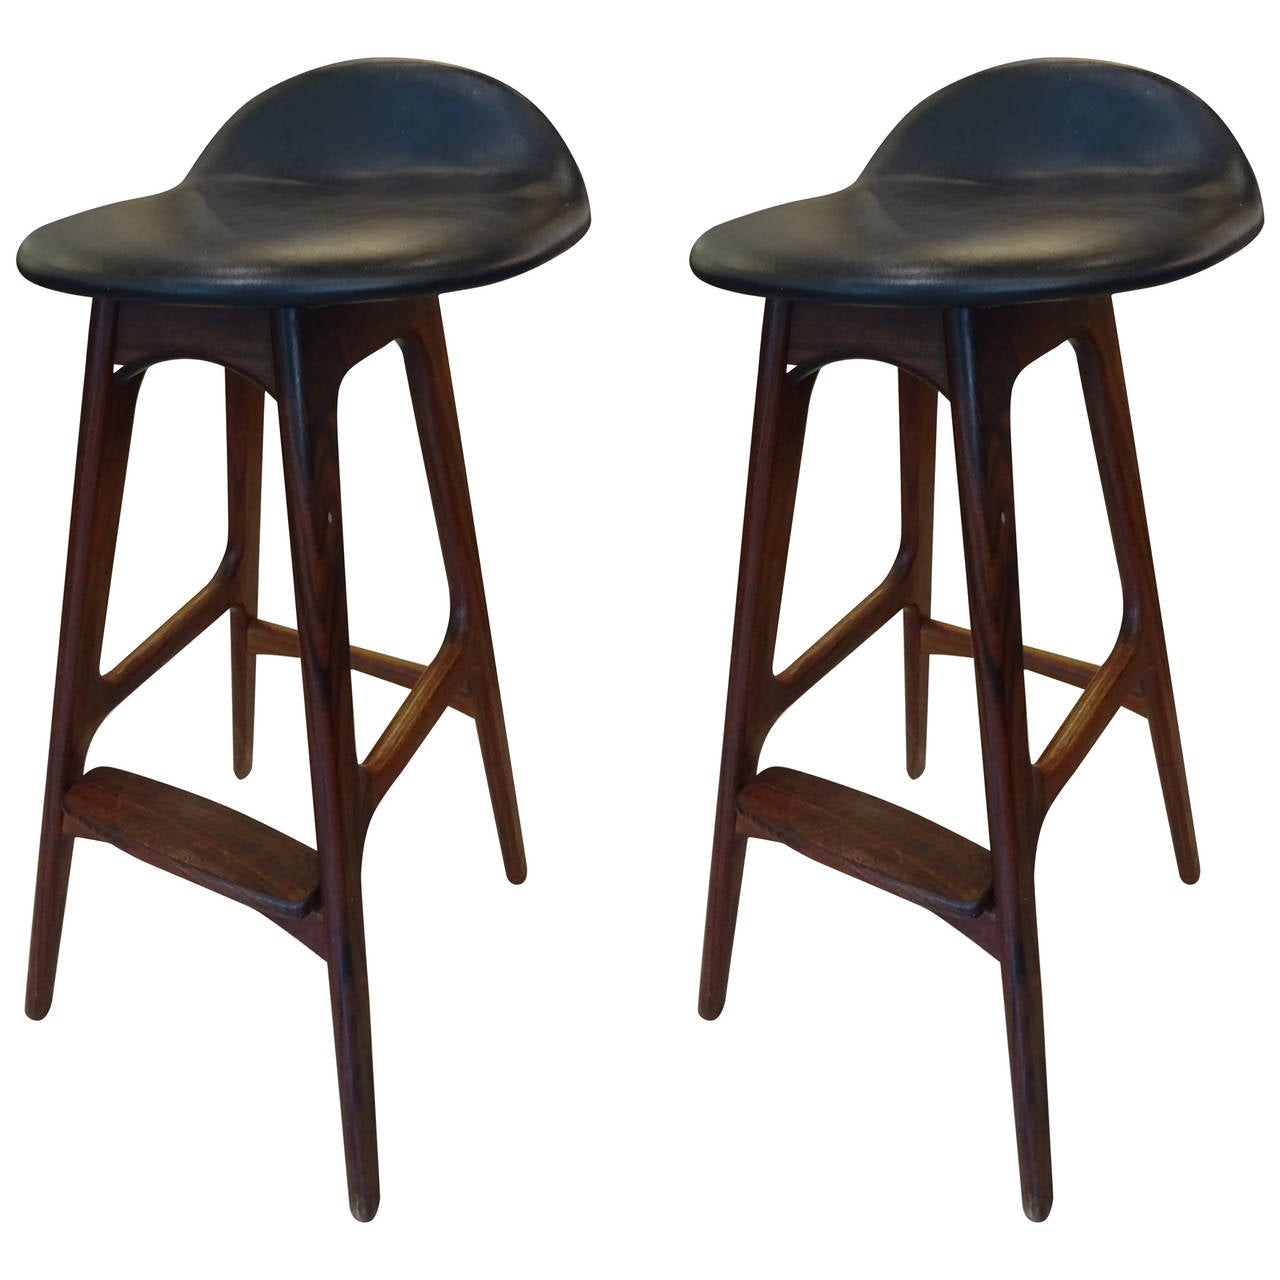 Pair of erik buch rosewood bar stools at 1stdibs - Erik buch bar stool ...